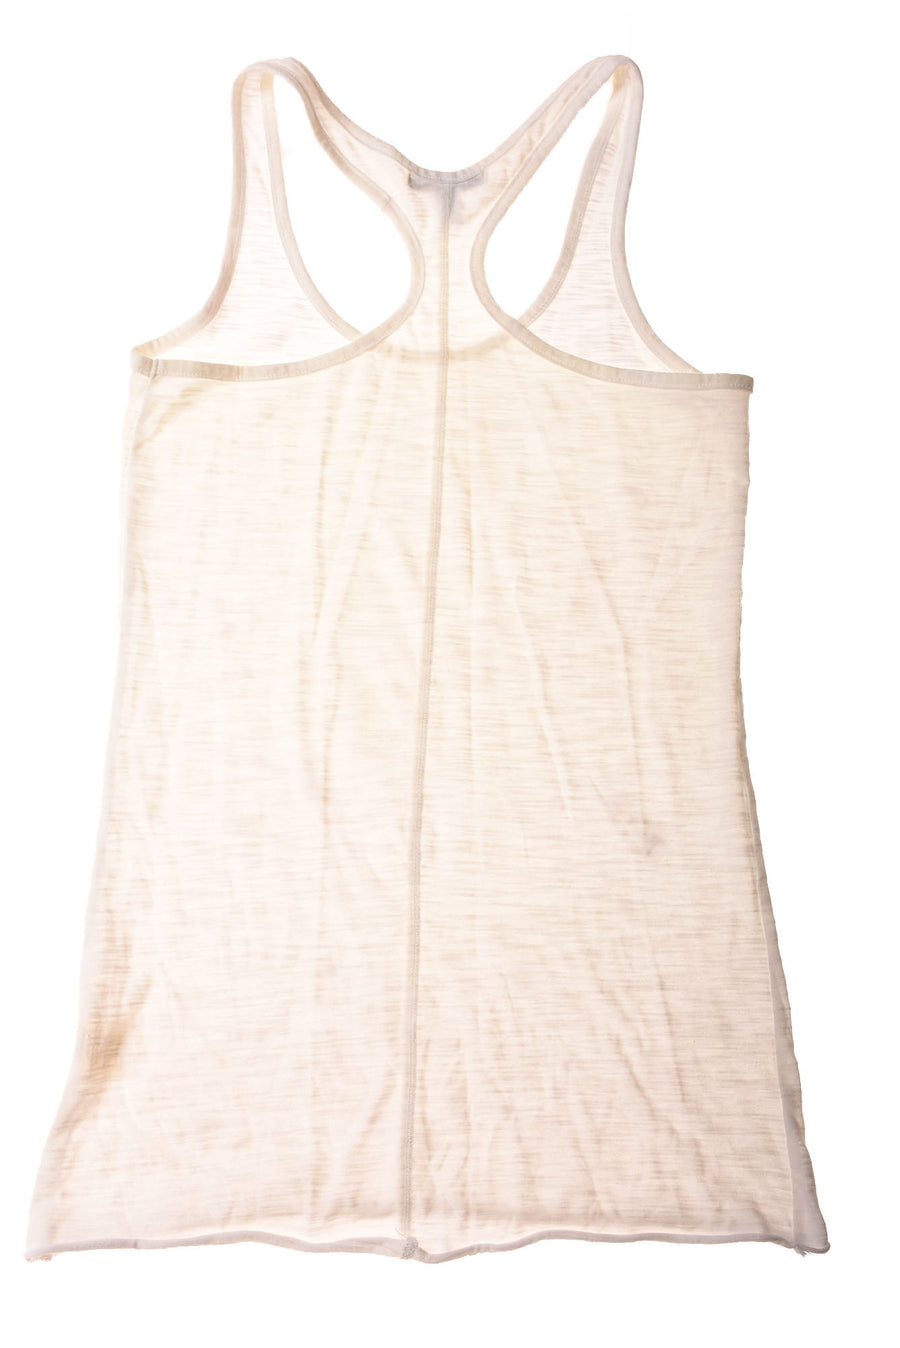 USED Delia*s Women's Top X-Small White